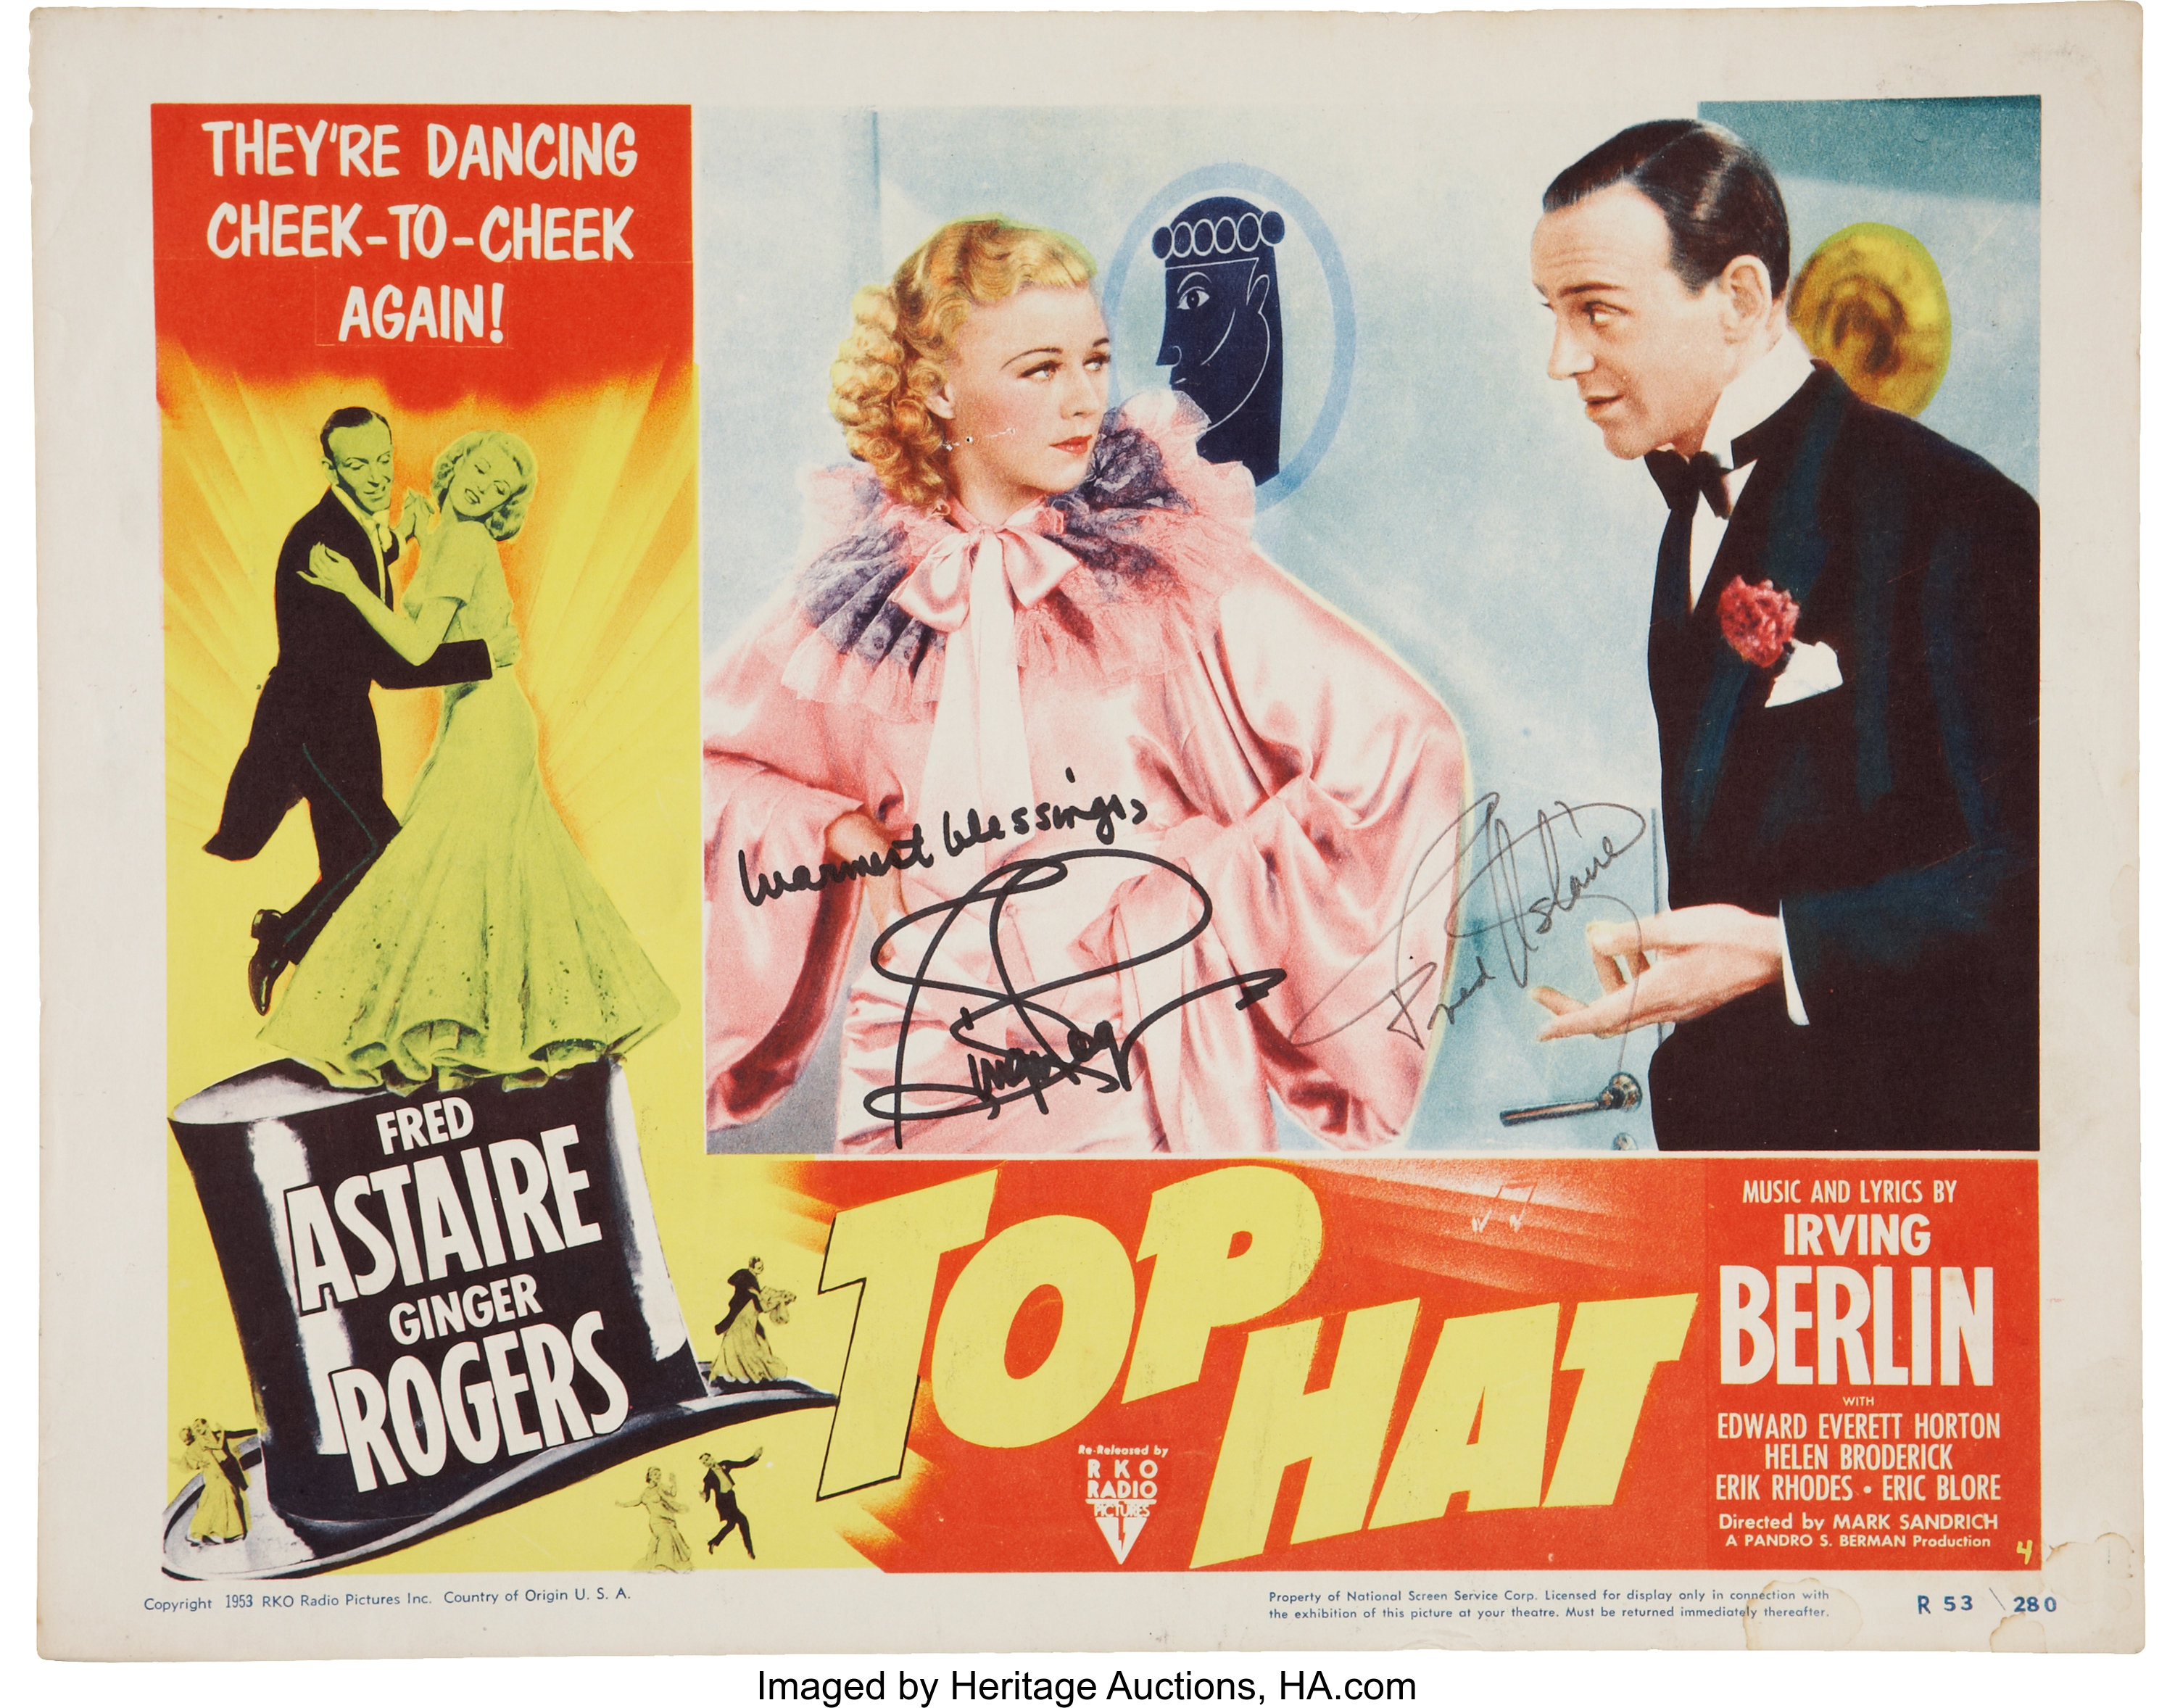 Fred Astaire And Ginger Rogers Autographed Top Hat Lobby Card Lot 50010 Heritage Auctions